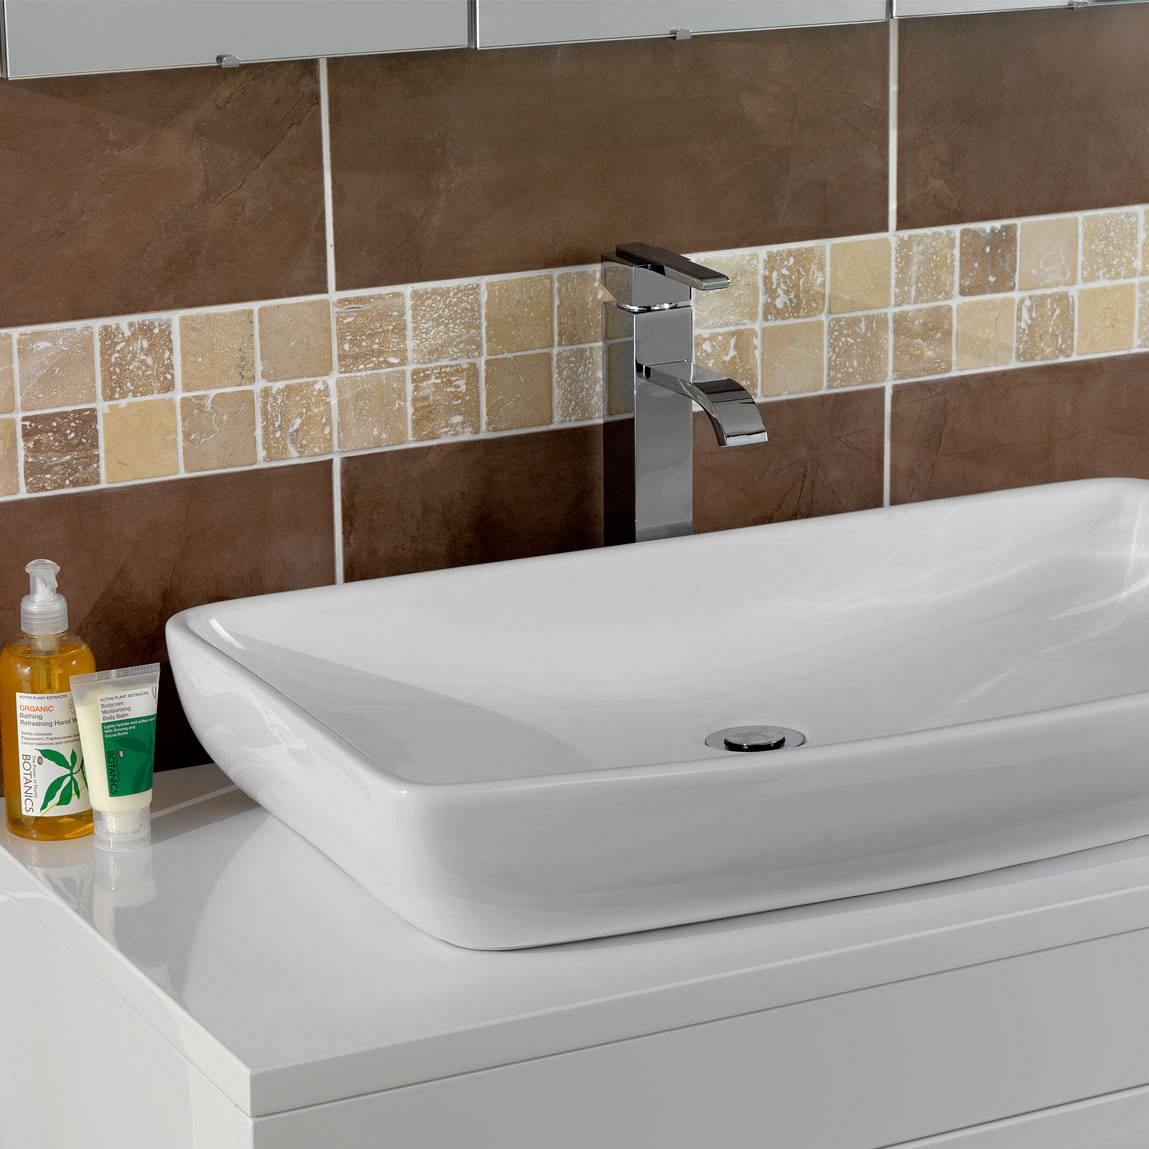 Ridge High Rise Basin Mixer Tap